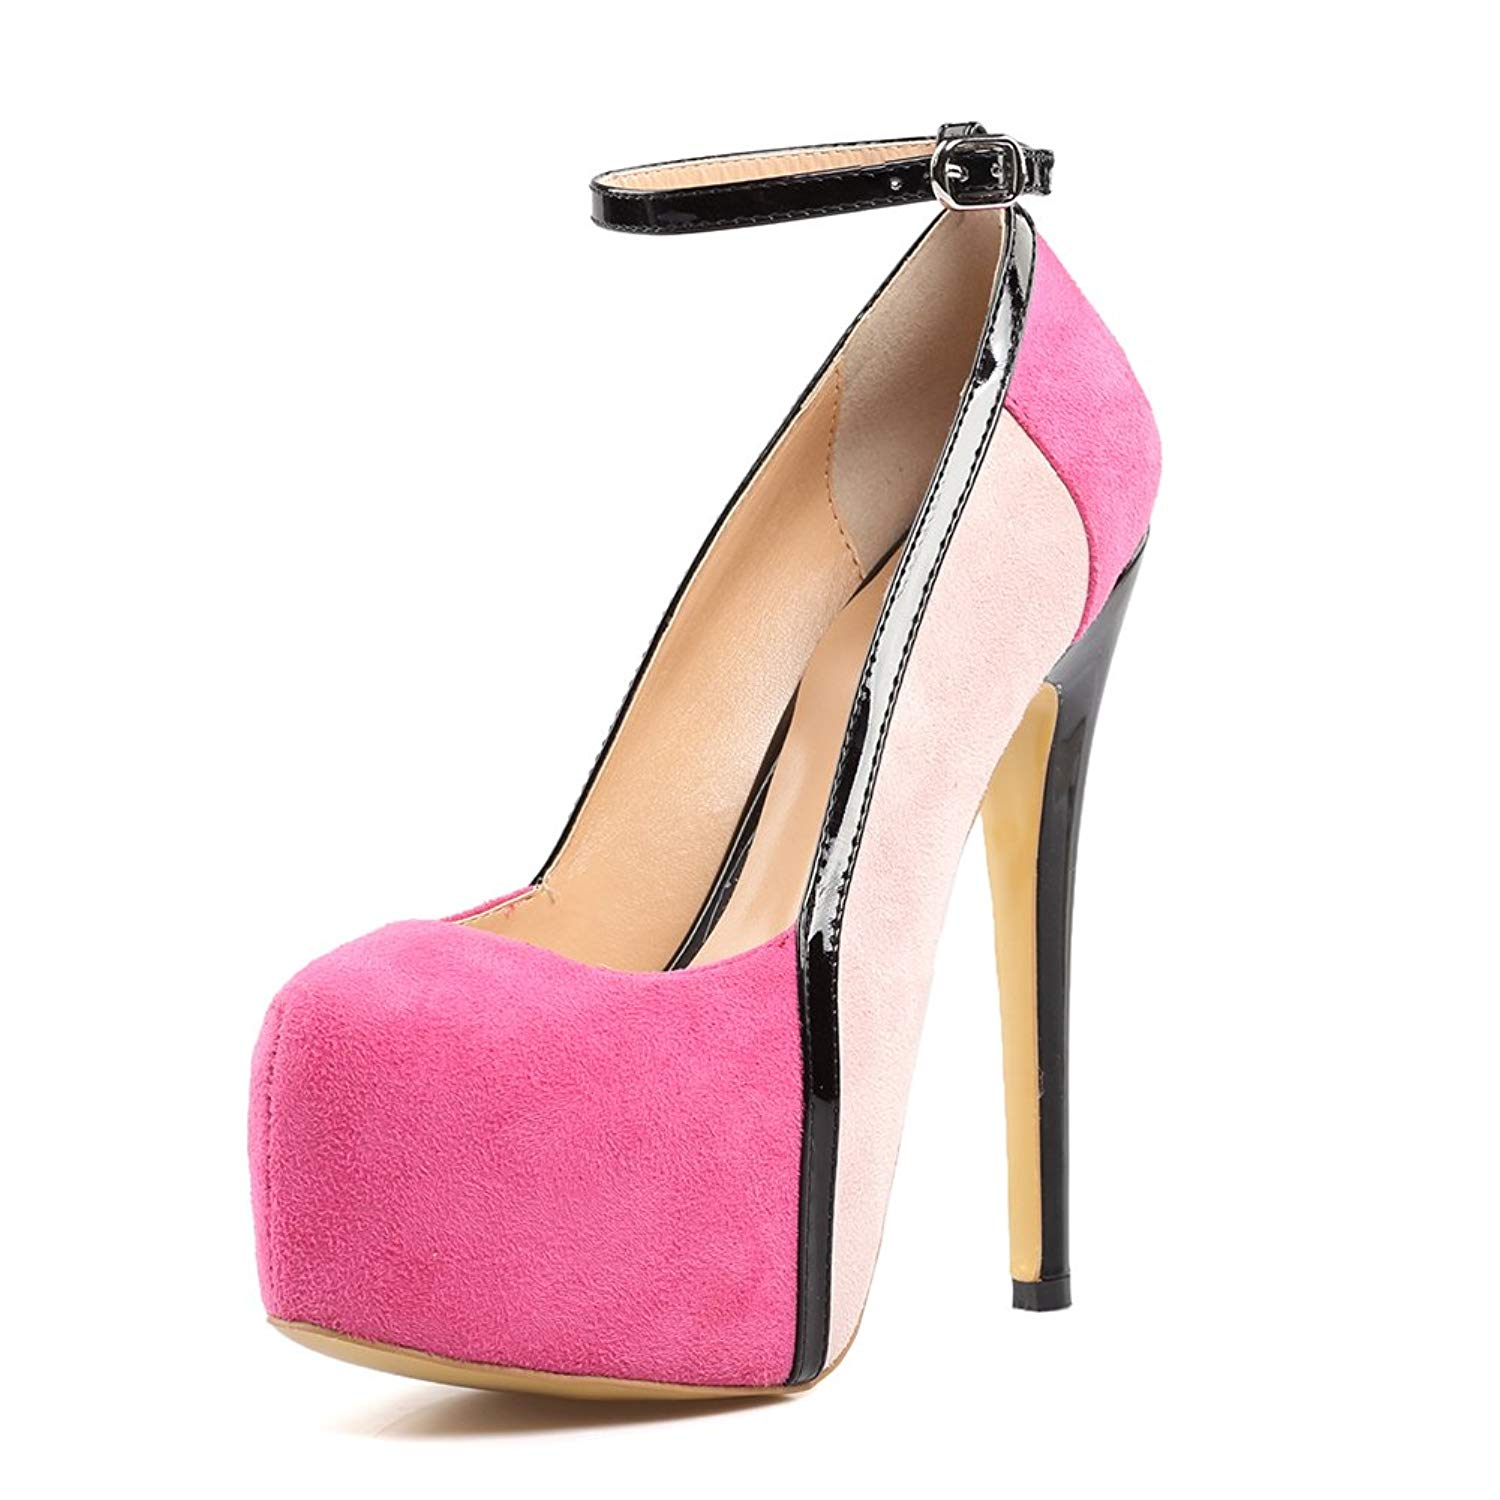 5a67396e4021 Get Quotations · Amy Q Platform Pumps Women s Round Toe Ankle Strap Sky High  Heels Pink Extremely Stilettos Cute